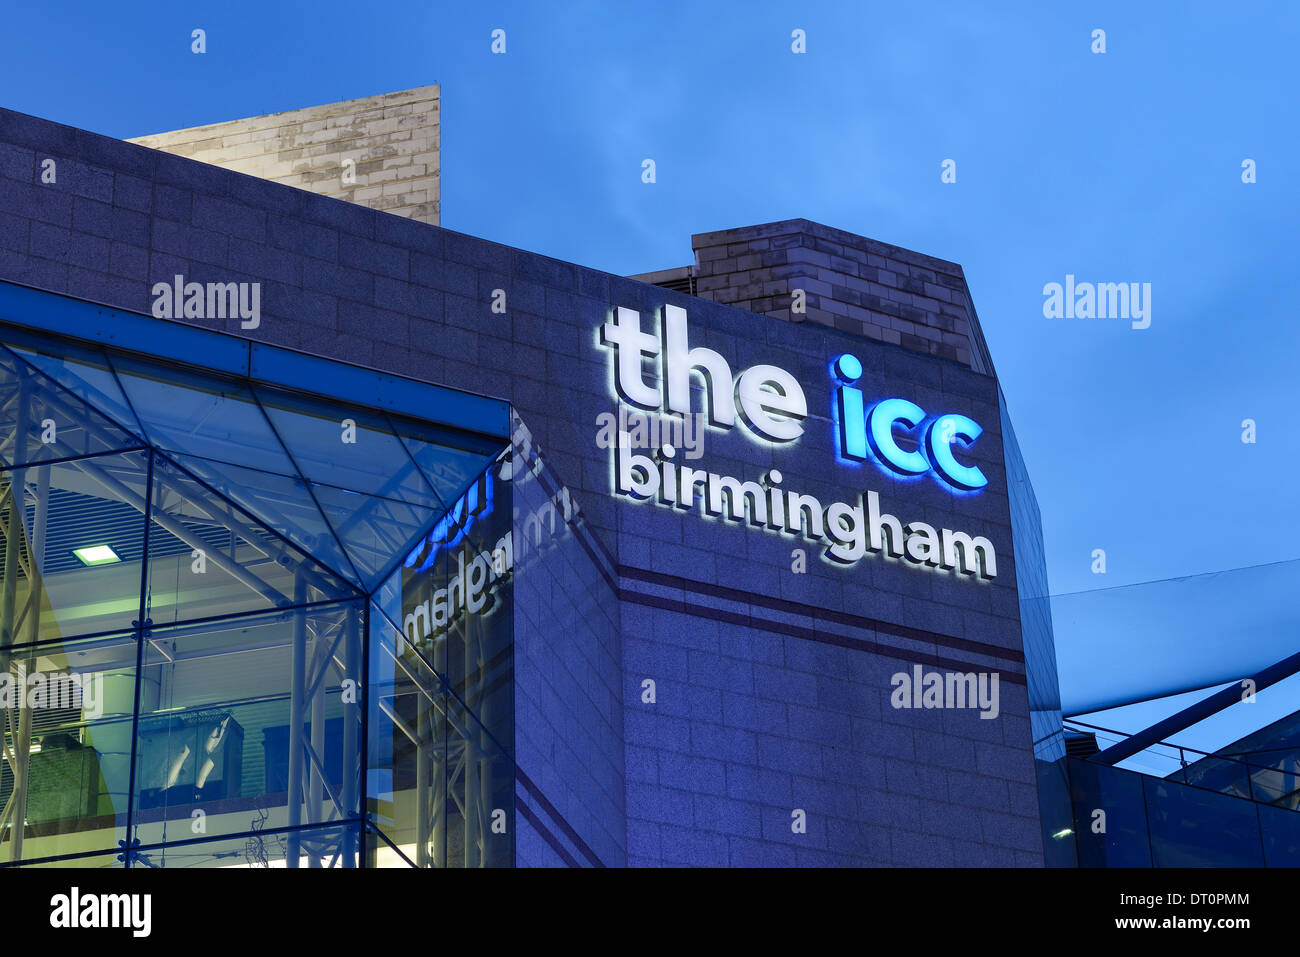 Detail of the icc building in Birmingham city centre - Stock Image